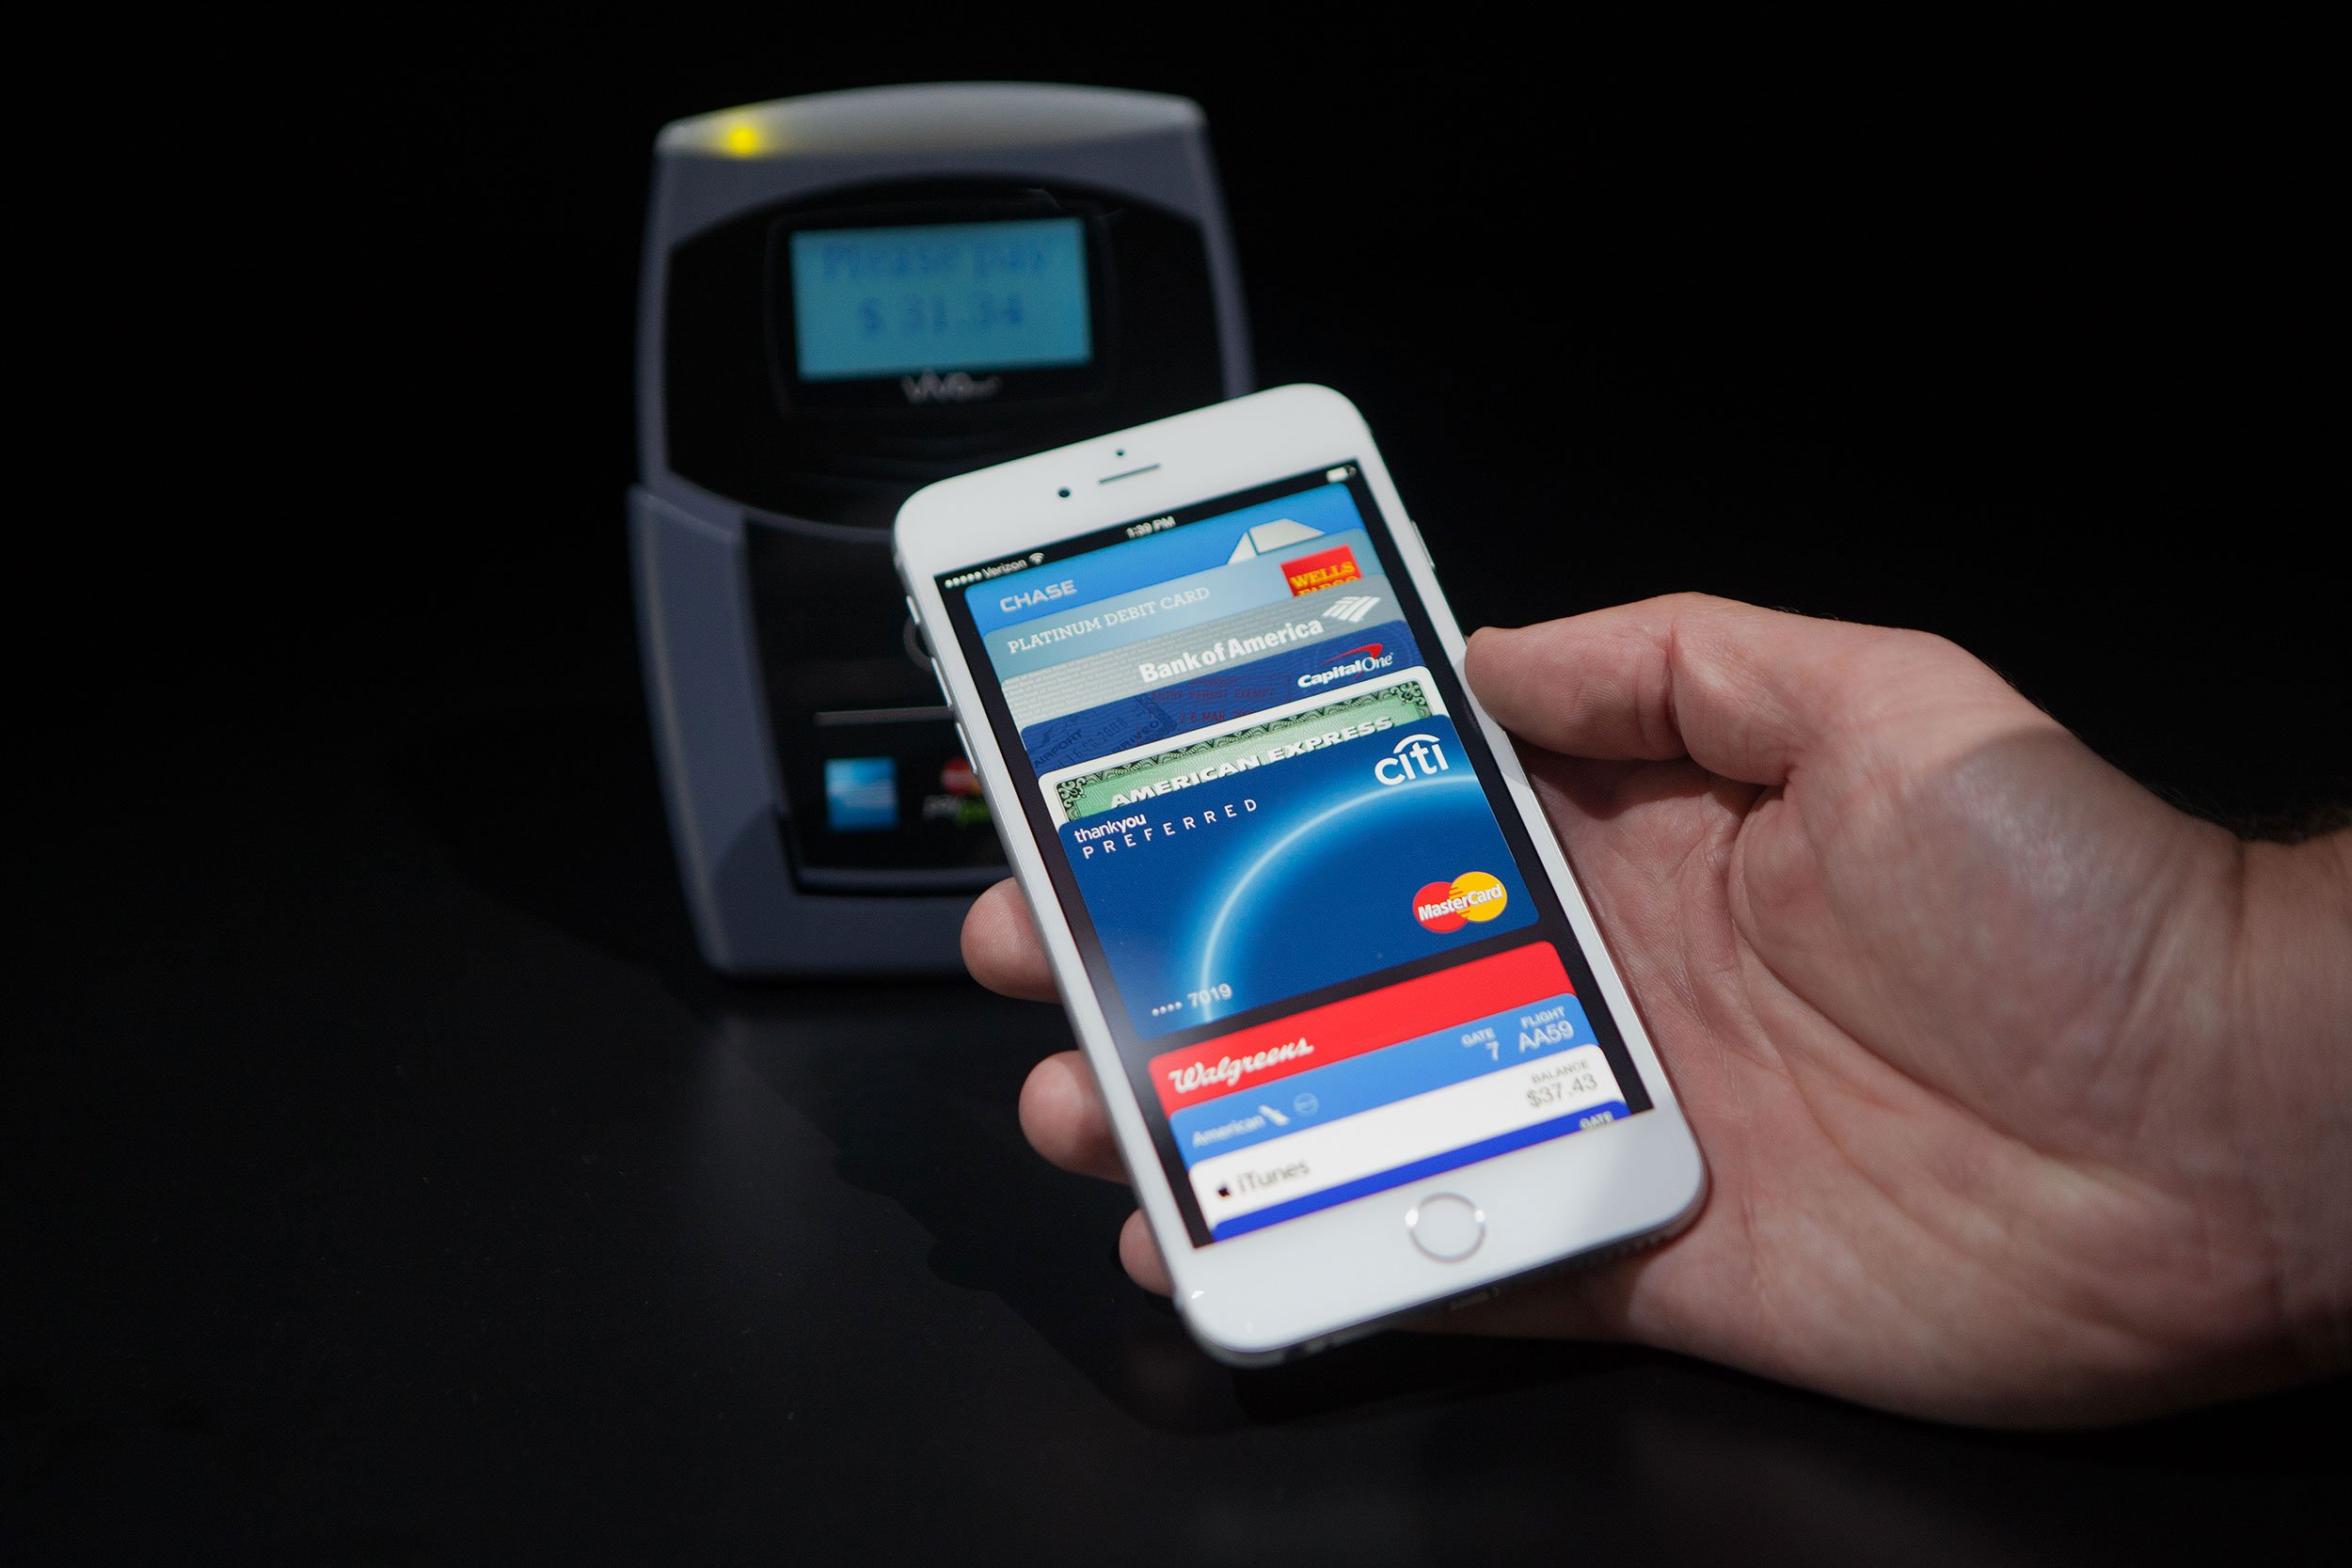 Apple Pay usage growth may be slow, but that's okay